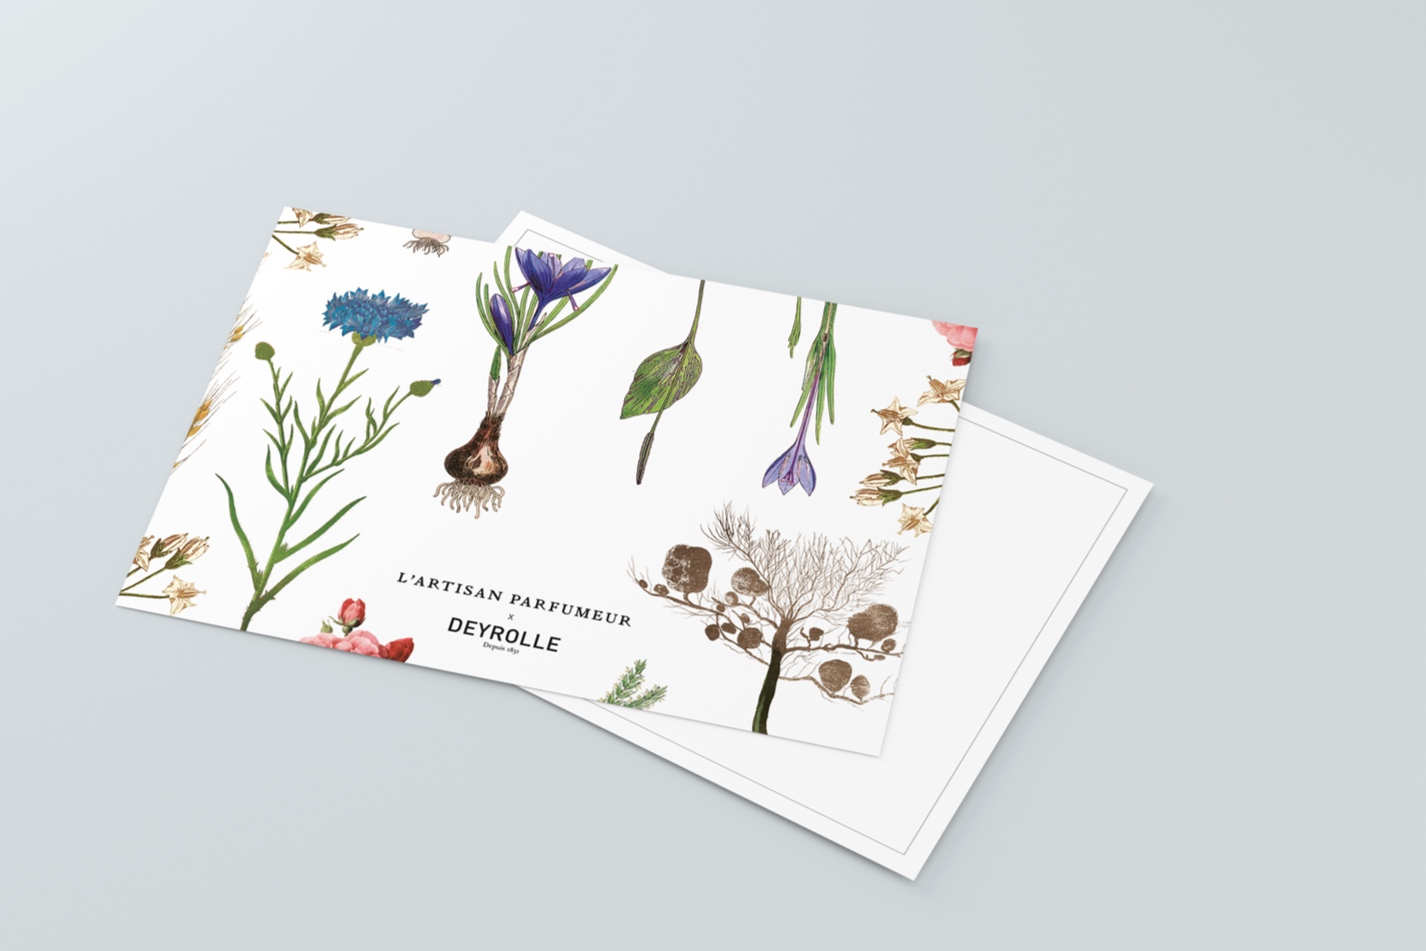 lee-simmons-design-ltd-LAP-invite-01.jpg